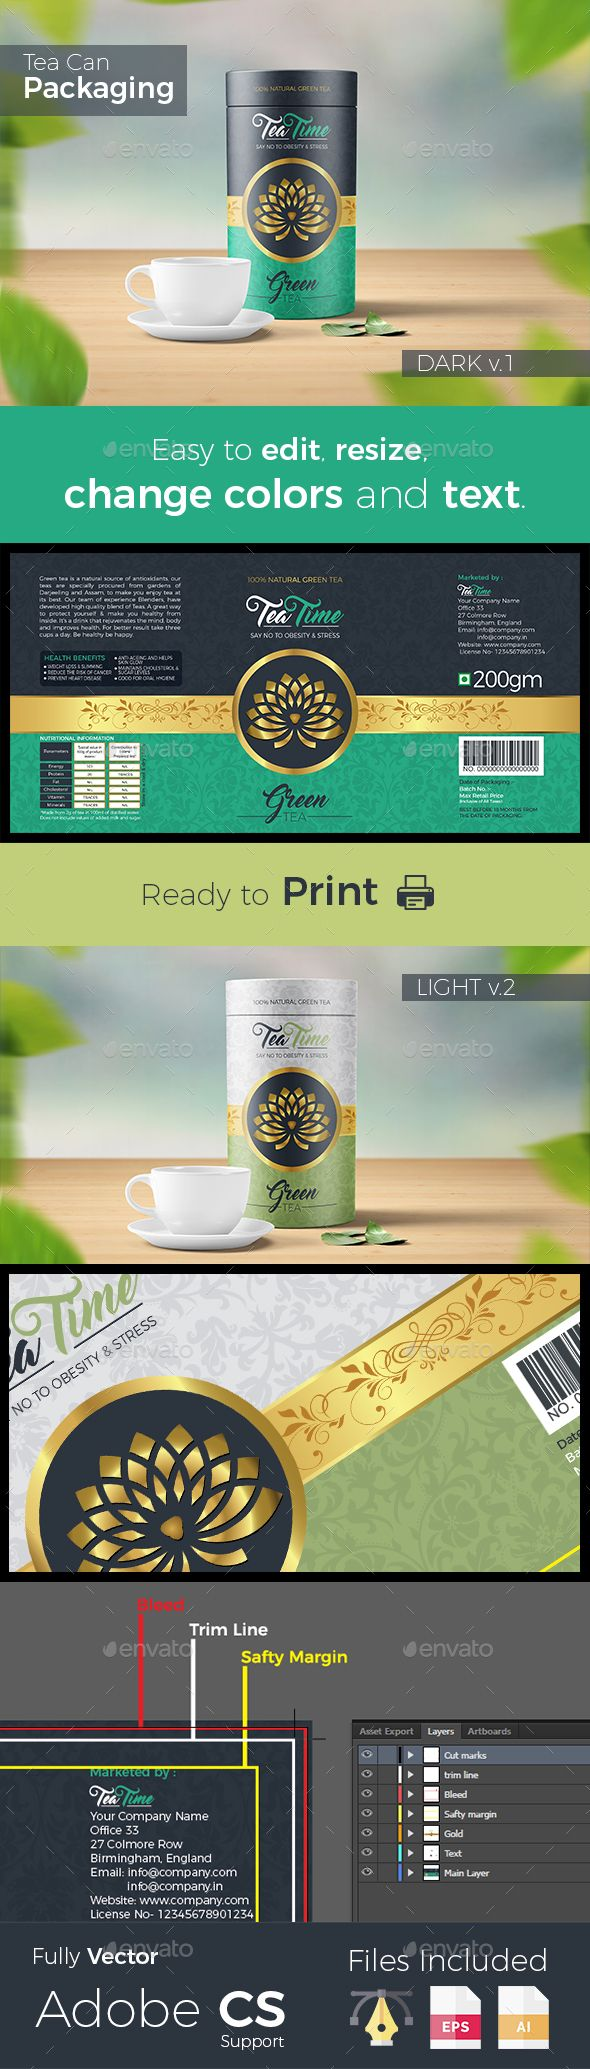 Pin by Maria Alena on Packaging Template | Tea packaging